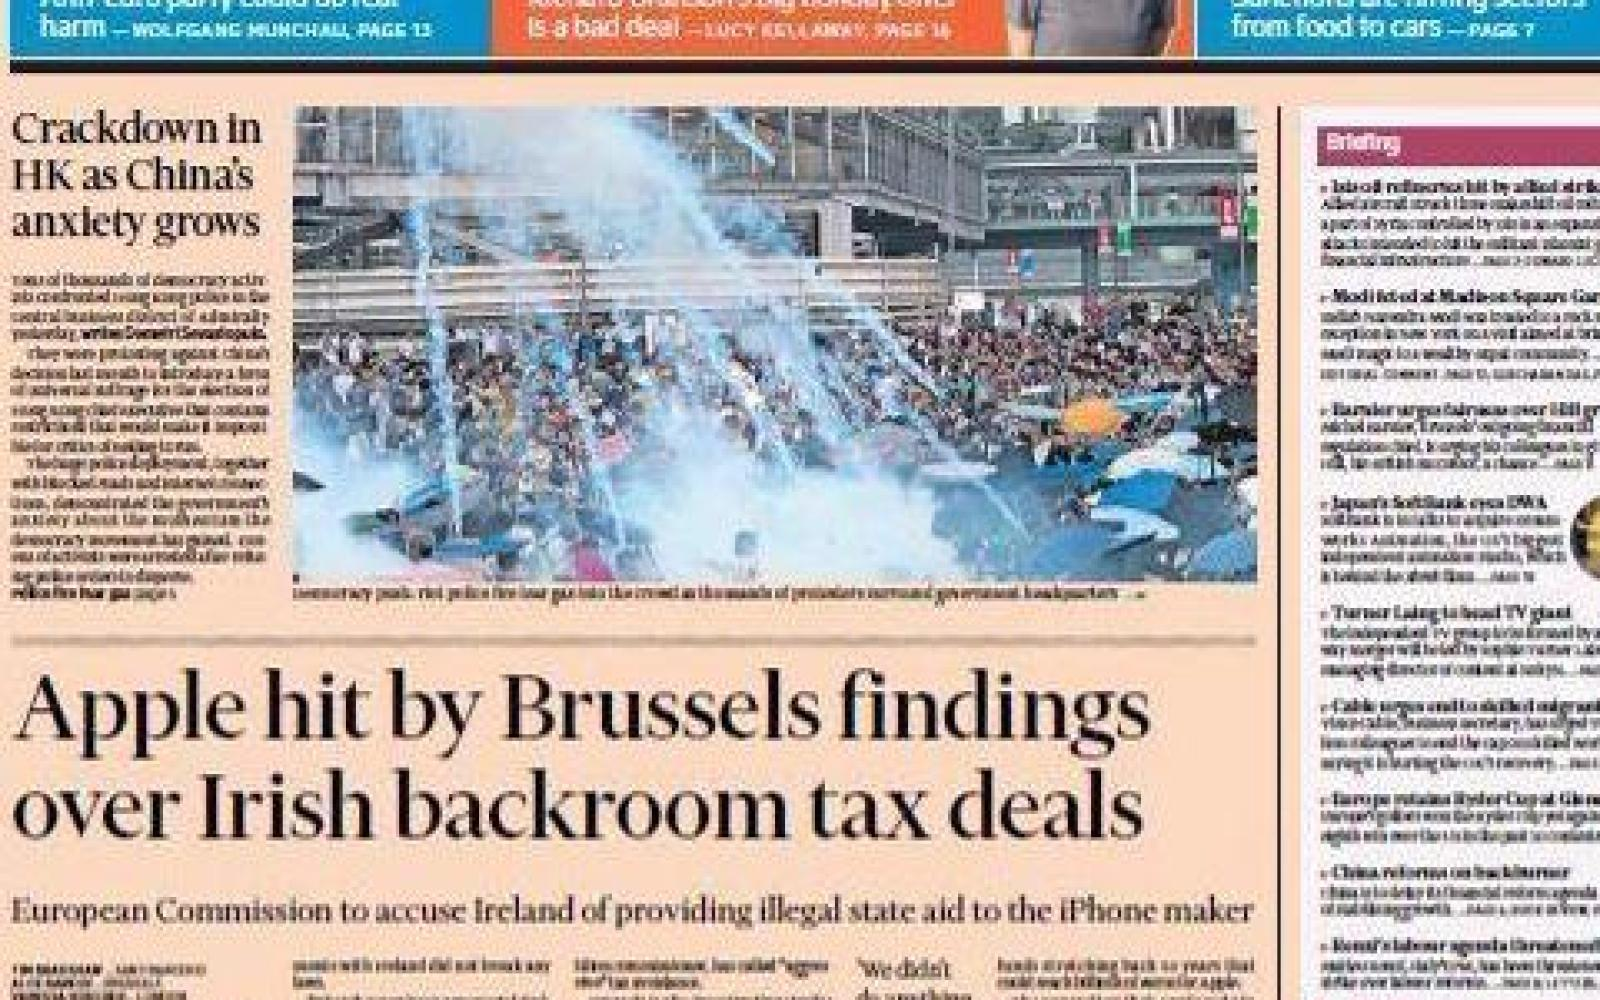 European Commision to accuse Ireland of giving illegal state aid to Apple, fines could be €Billions